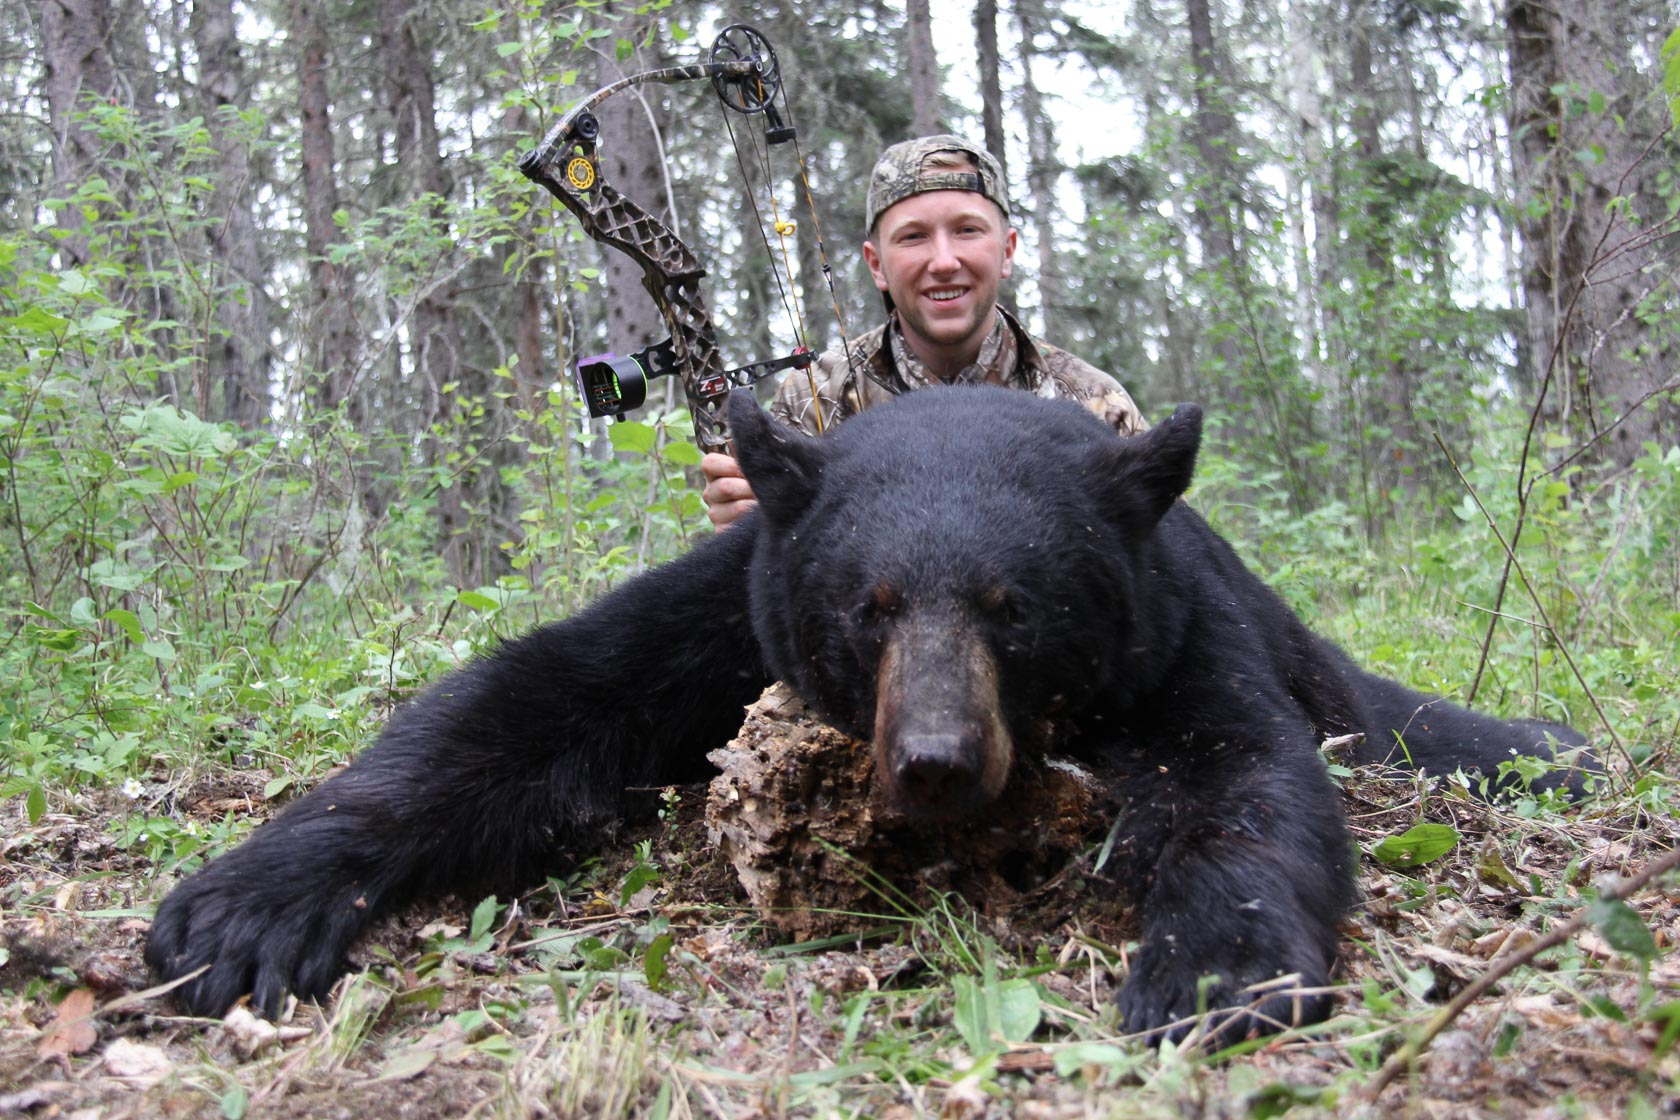 A young man holding a bow kneeling behind a black bear in the bush near Smoothstone Lake Lodge in Saskatchewan, Canada.